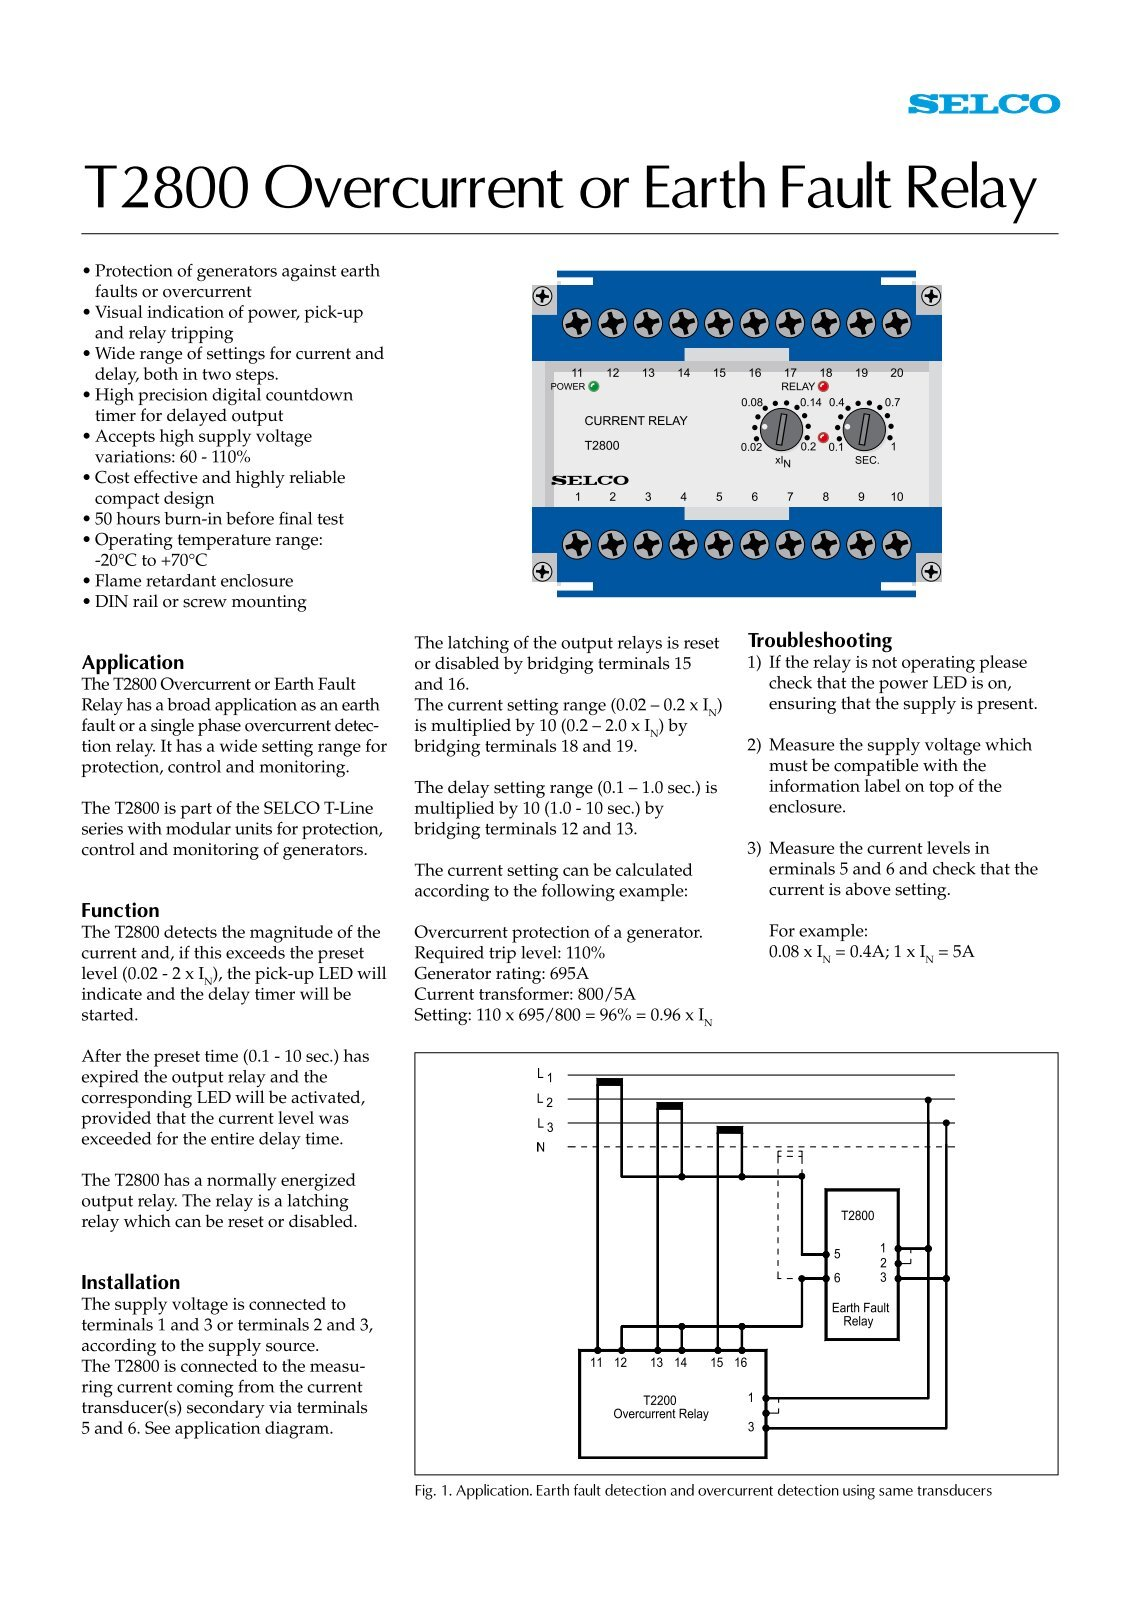 small resolution of 580k backhoe parts wiring diagram massey ferguson wiring schematic case 570lxt fuel system